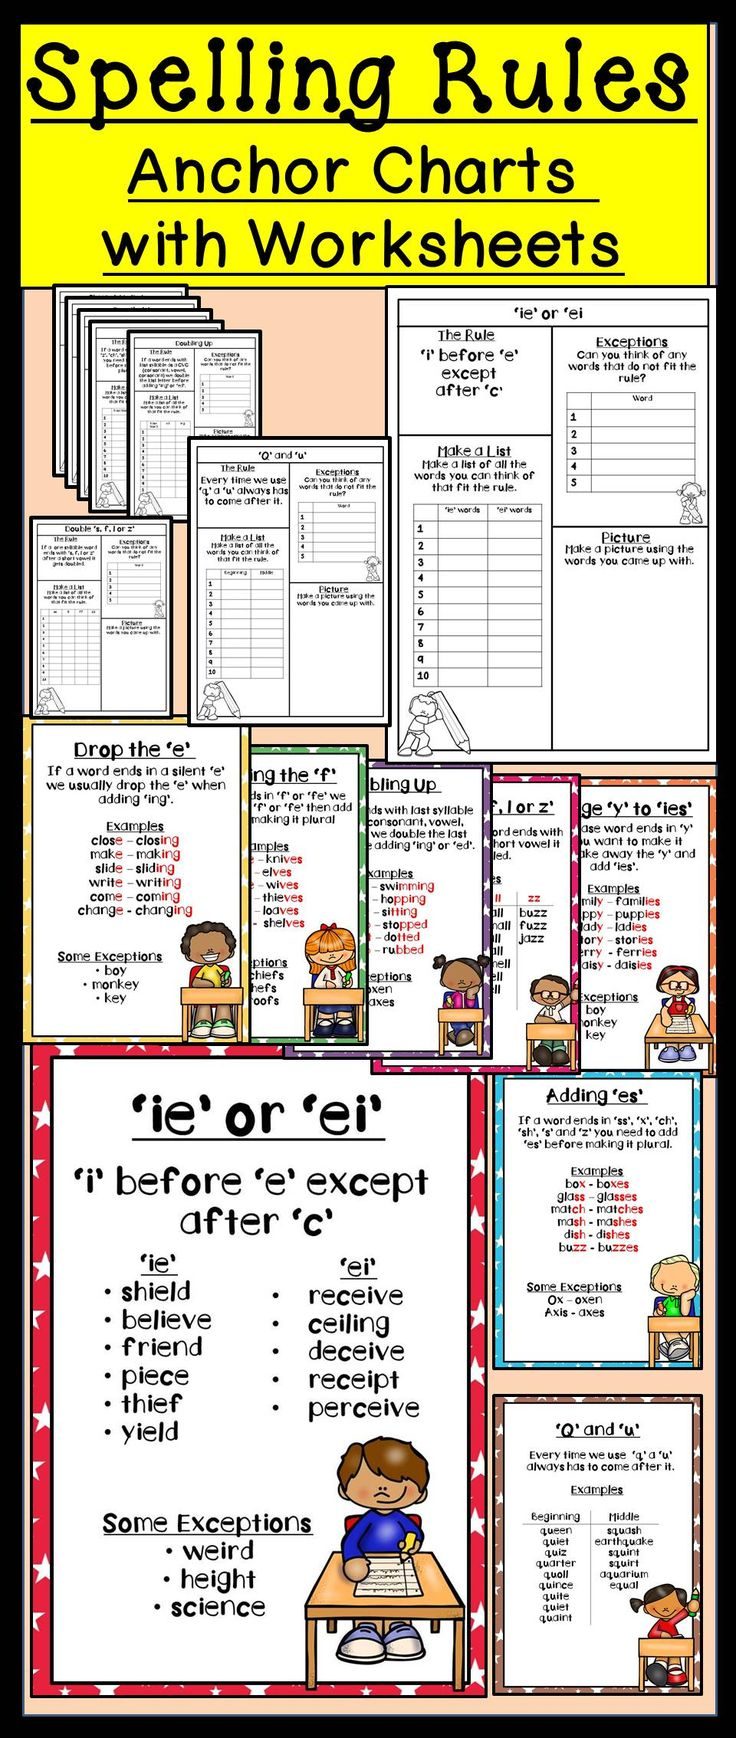 Workbooks making words plural worksheets : Best 25+ Spelling rules ideas on Pinterest | Phonics rules ...